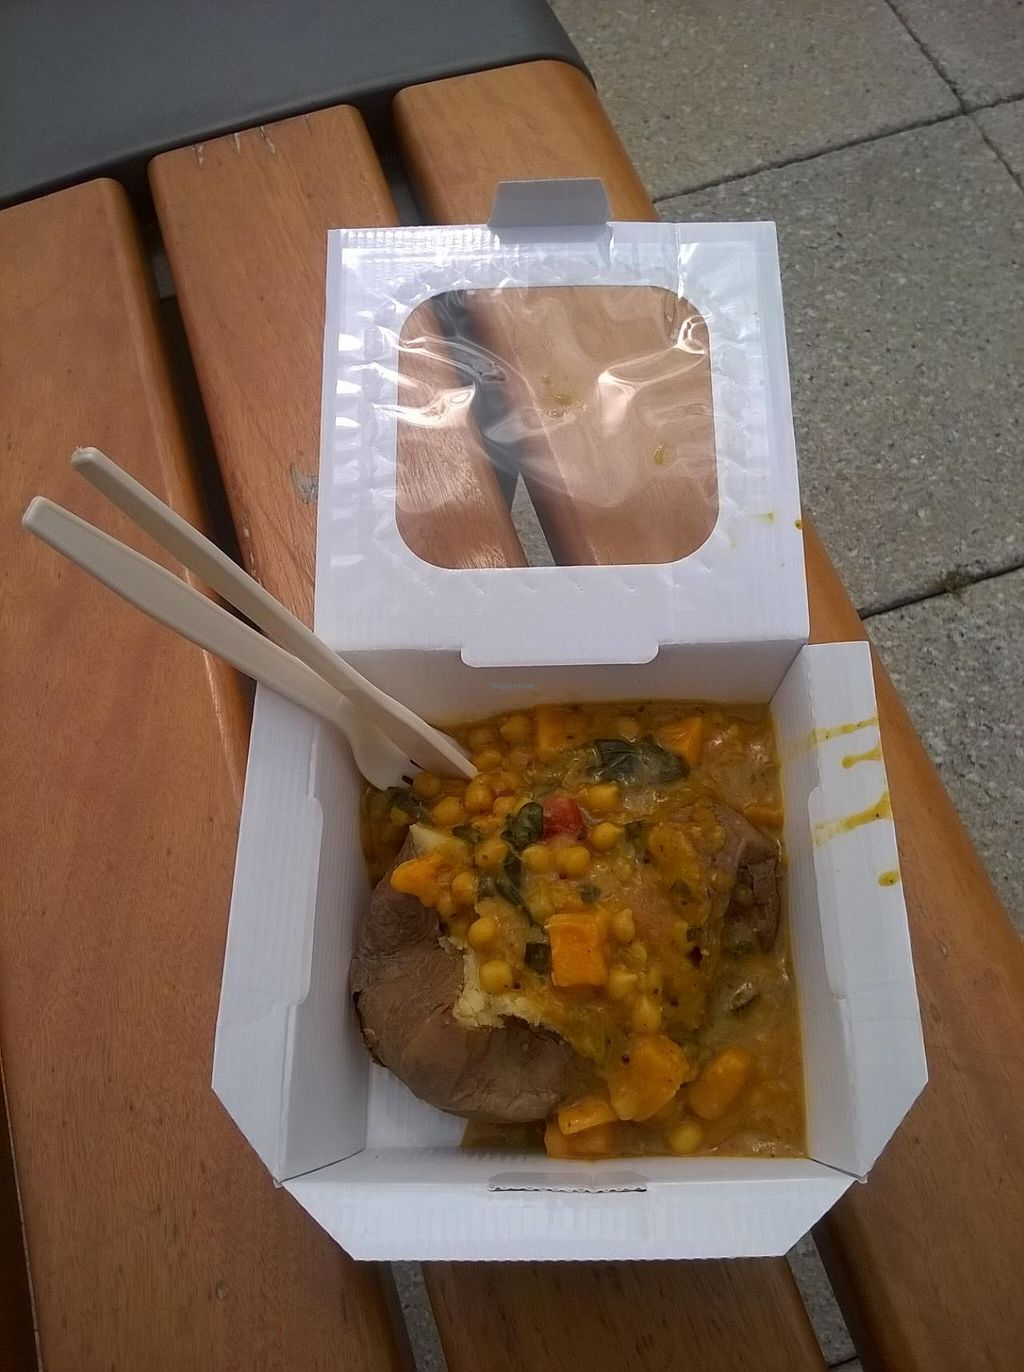 """Photo of Spud and Lettuce  by <a href=""""/members/profile/deadpledge"""">deadpledge</a> <br/>Jacket Potato with Spinach, Chick Pea and Sweet Potato Curry <br/> July 10, 2015  - <a href='/contact/abuse/image/58988/108771'>Report</a>"""